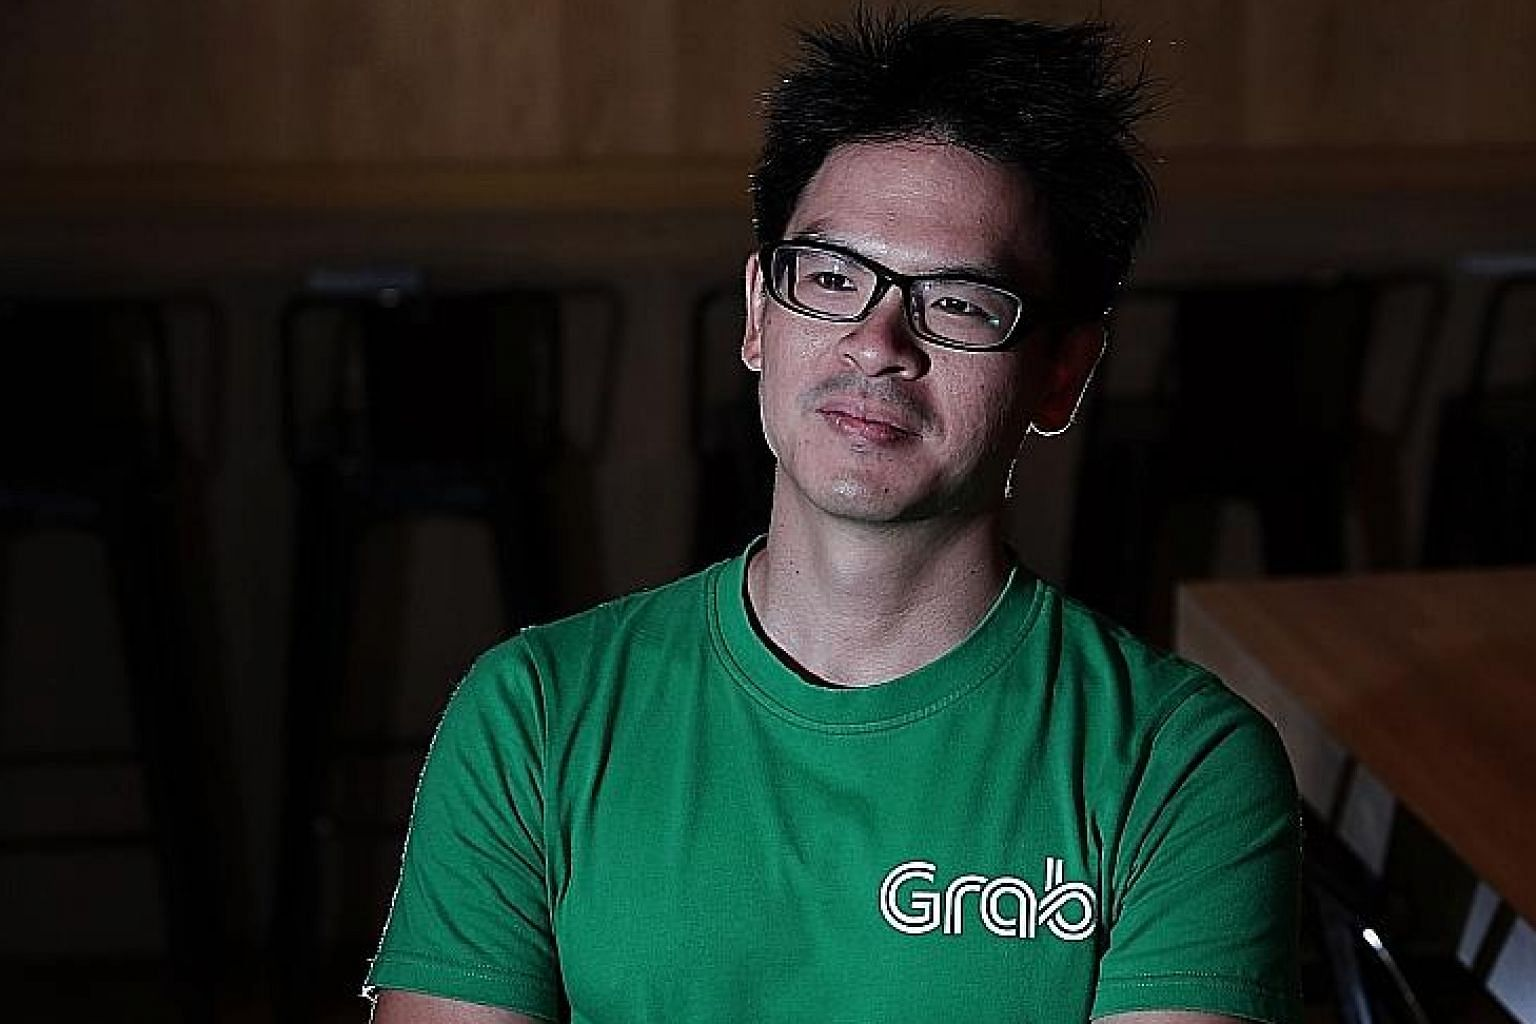 """Mr Lim Kell Jay, head of Grab Singapore, says the aim is to be an """"everyday super app"""" - where customers """"will not only be able to book a ride, but order food, pay for stuff... all the things you typically do every day""""."""